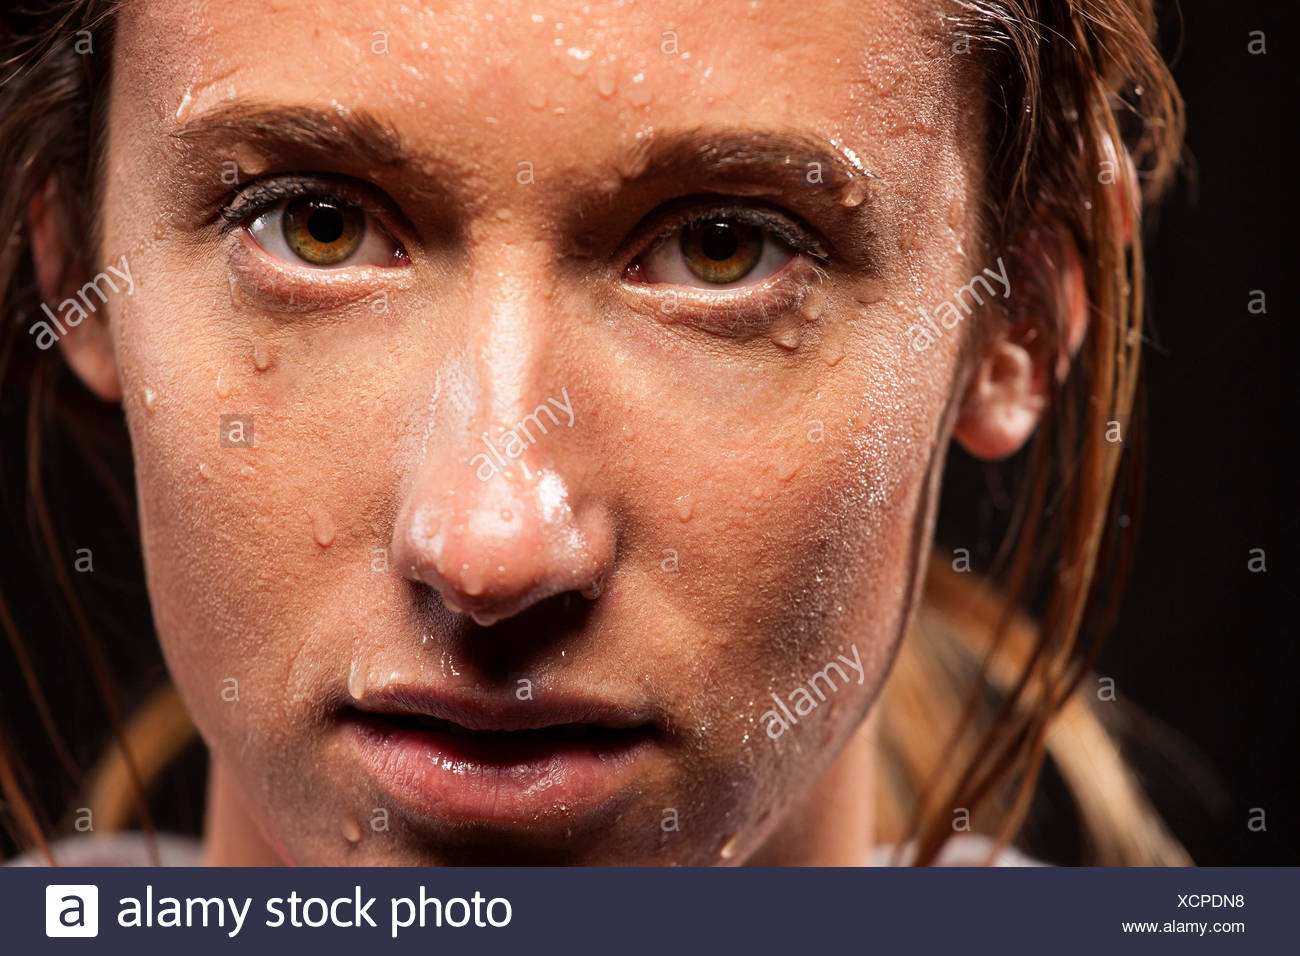 Woman with sweat on face Stock Photo